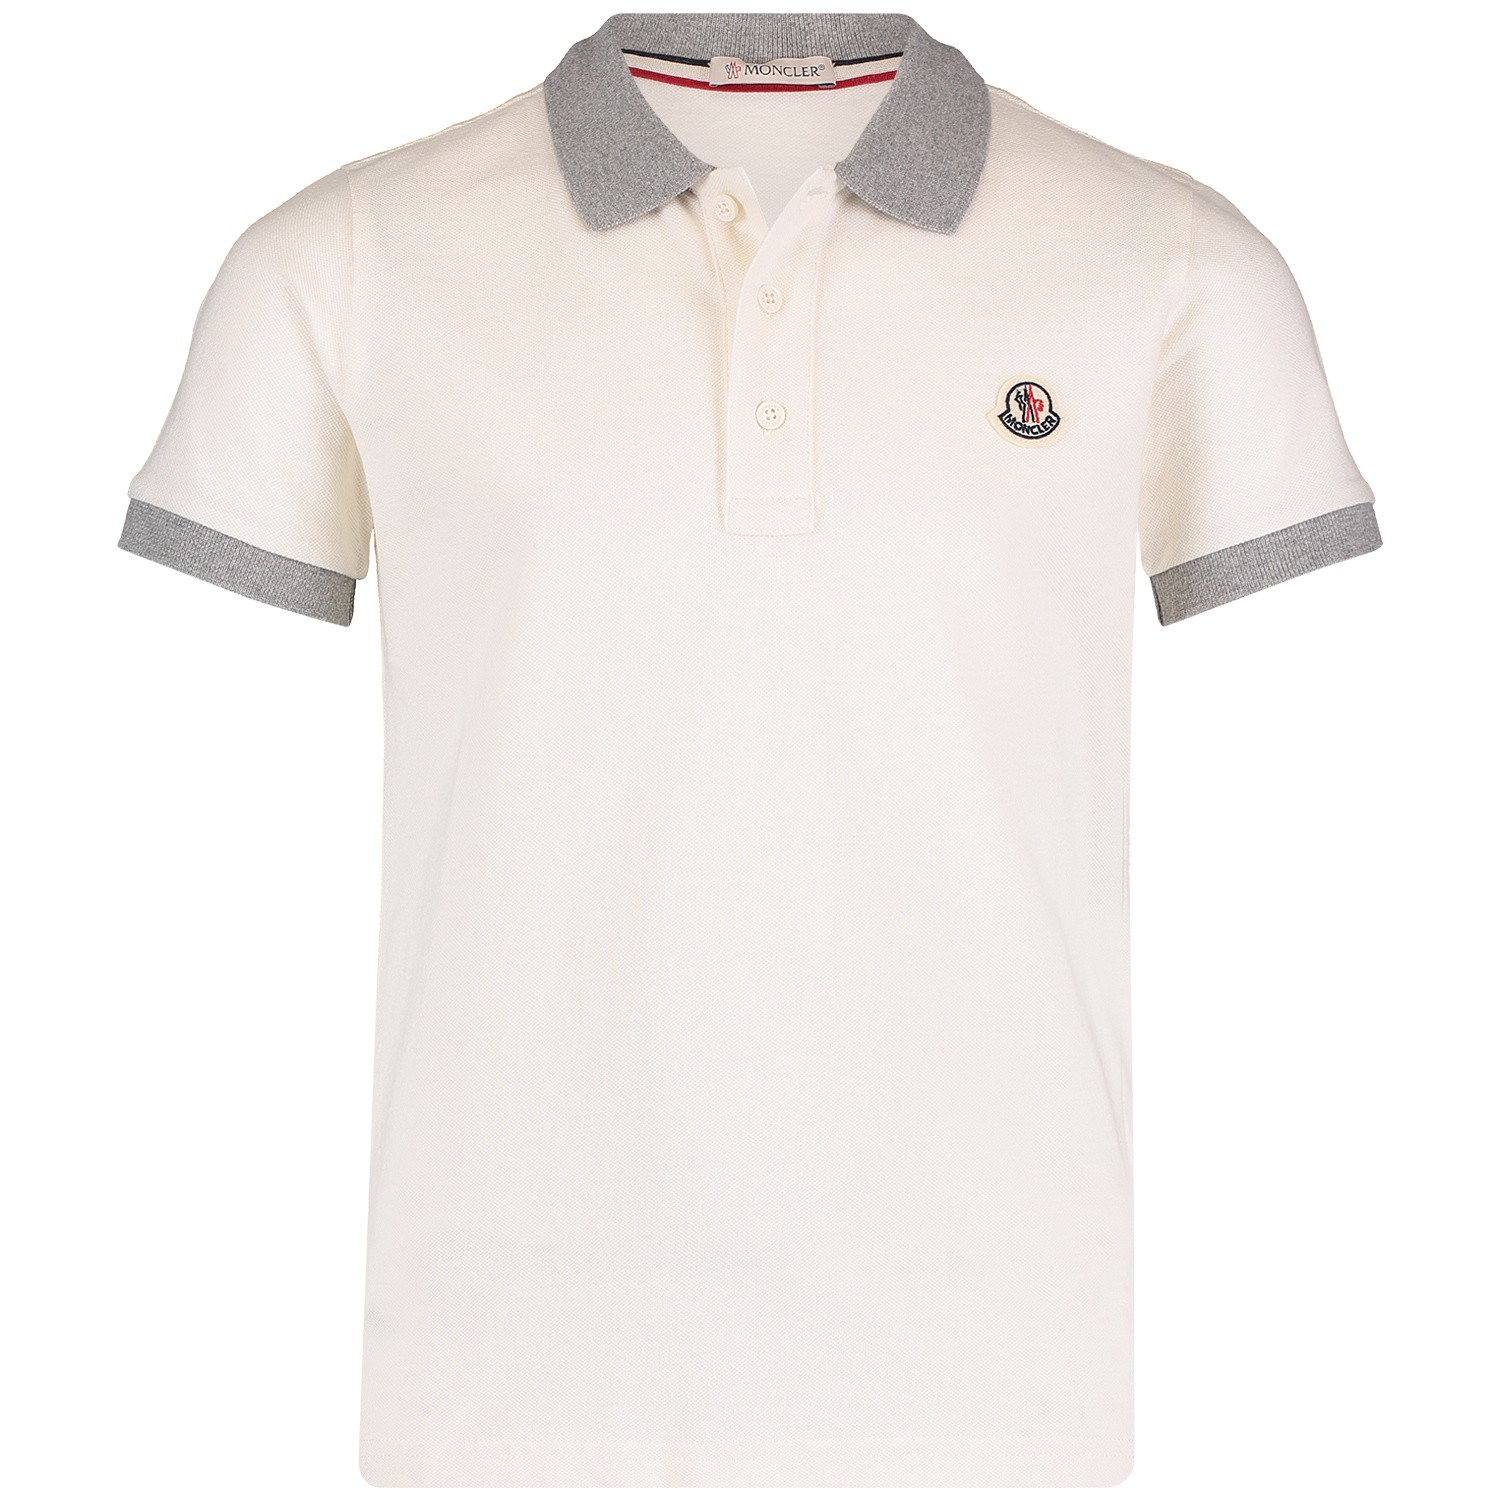 Picture of Moncler 8307850 kids polo shirt off white